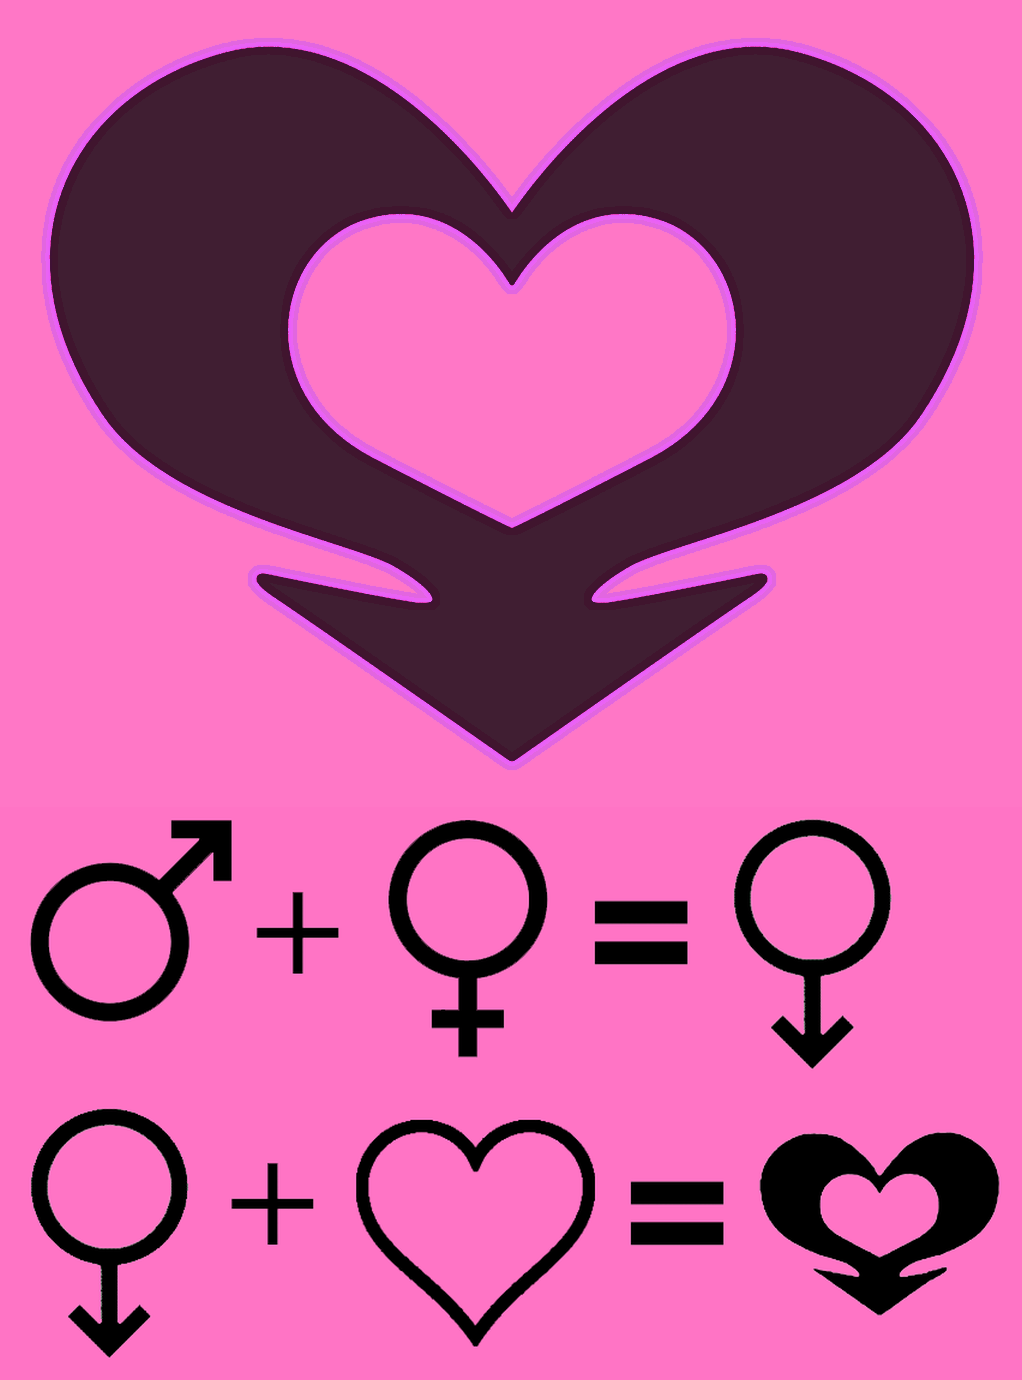 Sissyheart A Gender Symbol For Sissies First Take The Male Mars